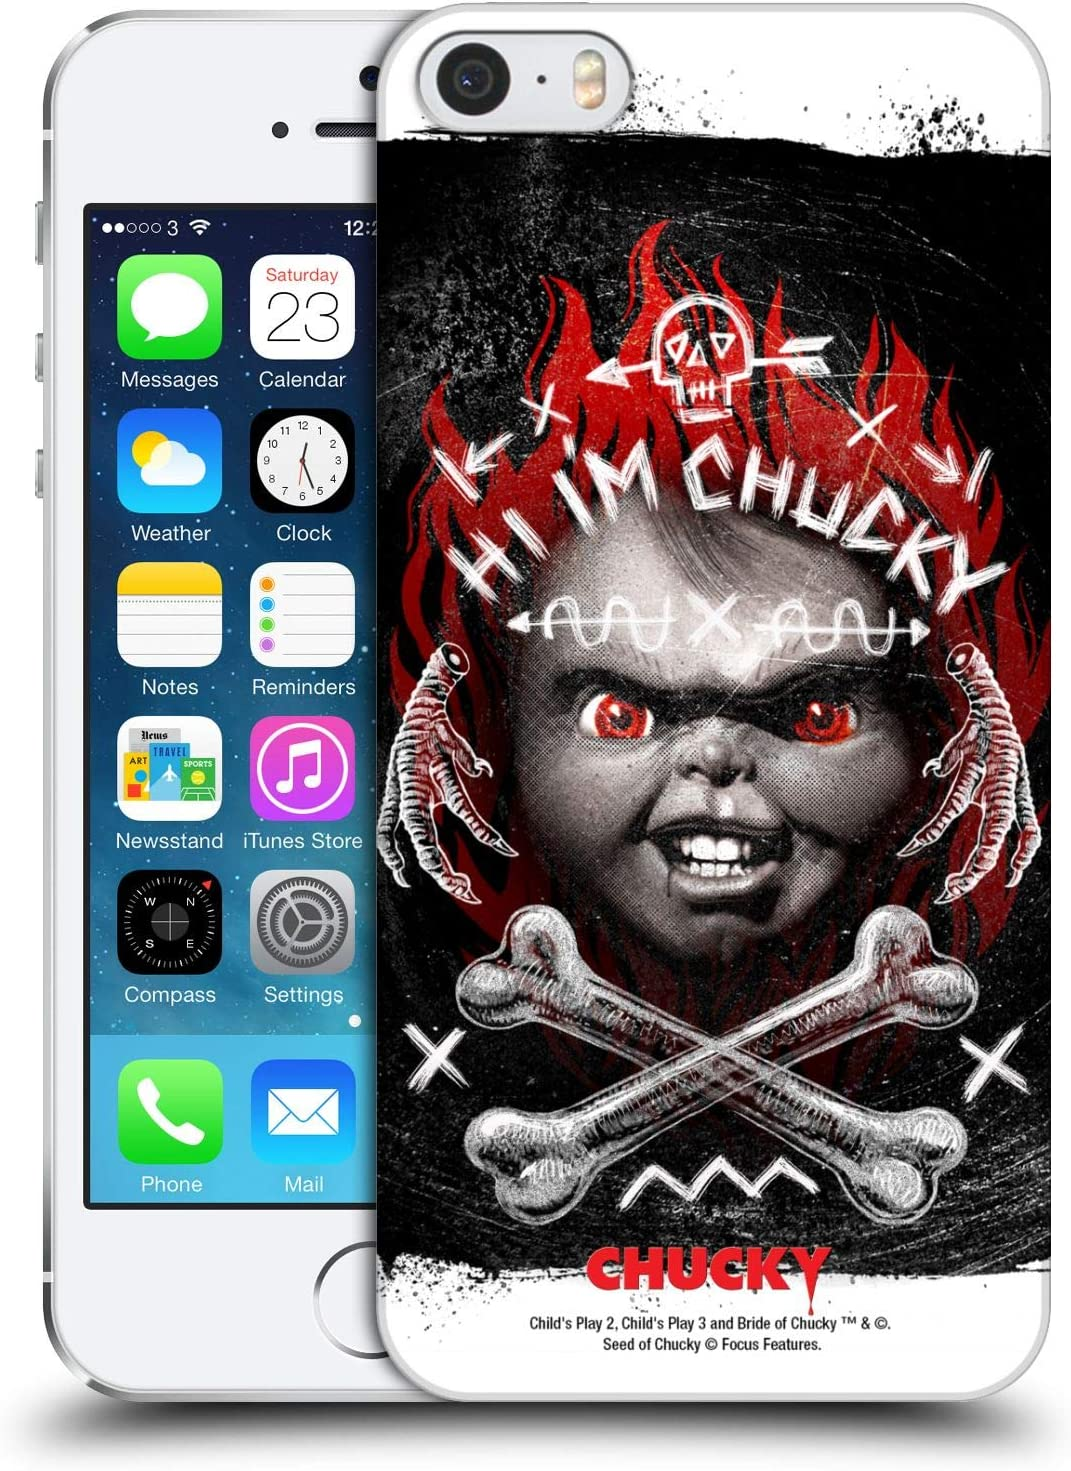 Head Case Designs Officially Licensed Child's Play Hi I'm Chucky Grunge Key Art Hard Back Case Compatible with Apple iPhone 5 / iPhone 5s / iPhone SE 2016